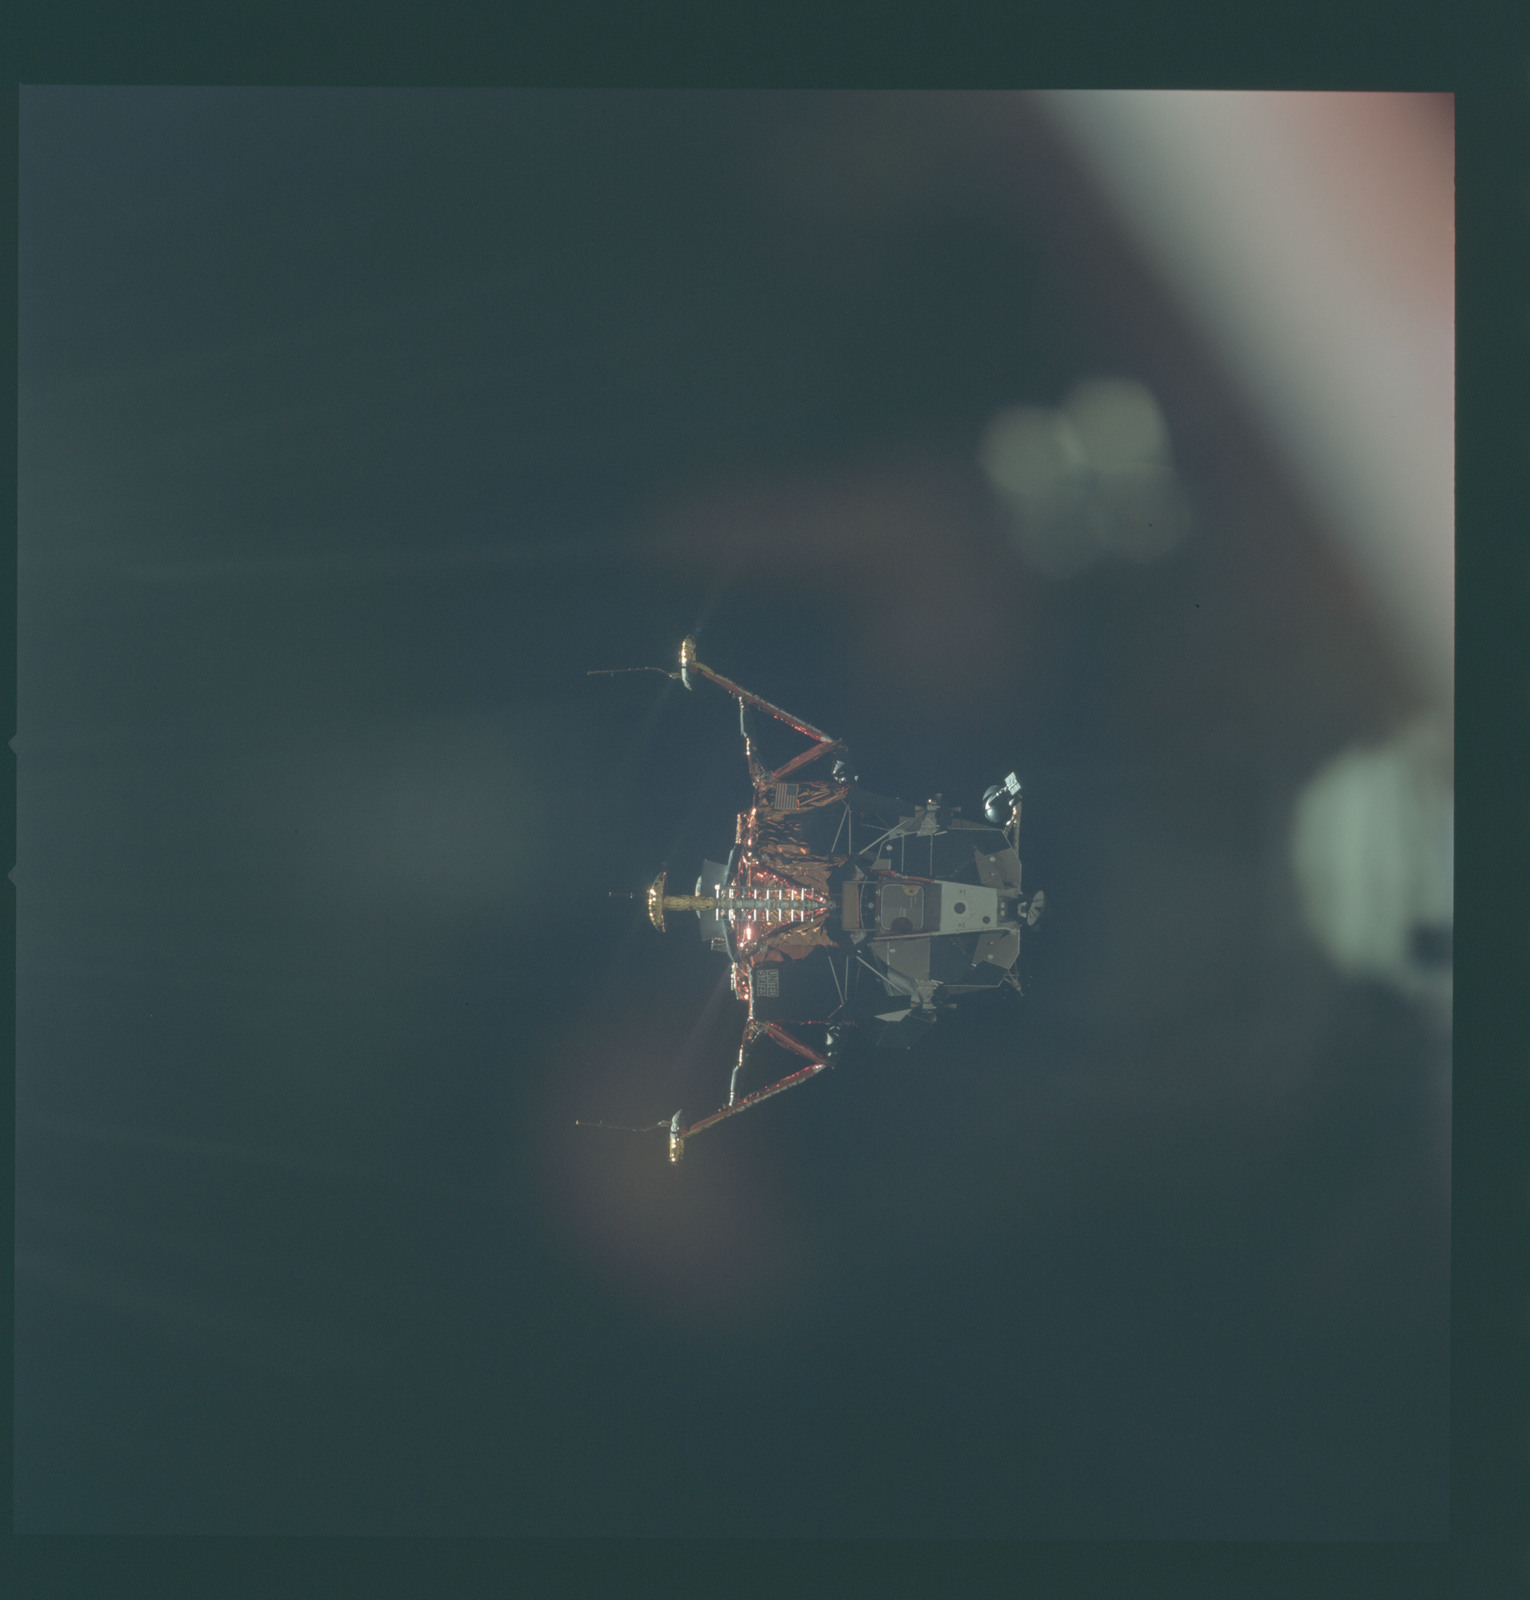 AS11-44-6597 - Apollo 11 - Apollo 11 Mission image - View of Lunar Module separation from the Command Module